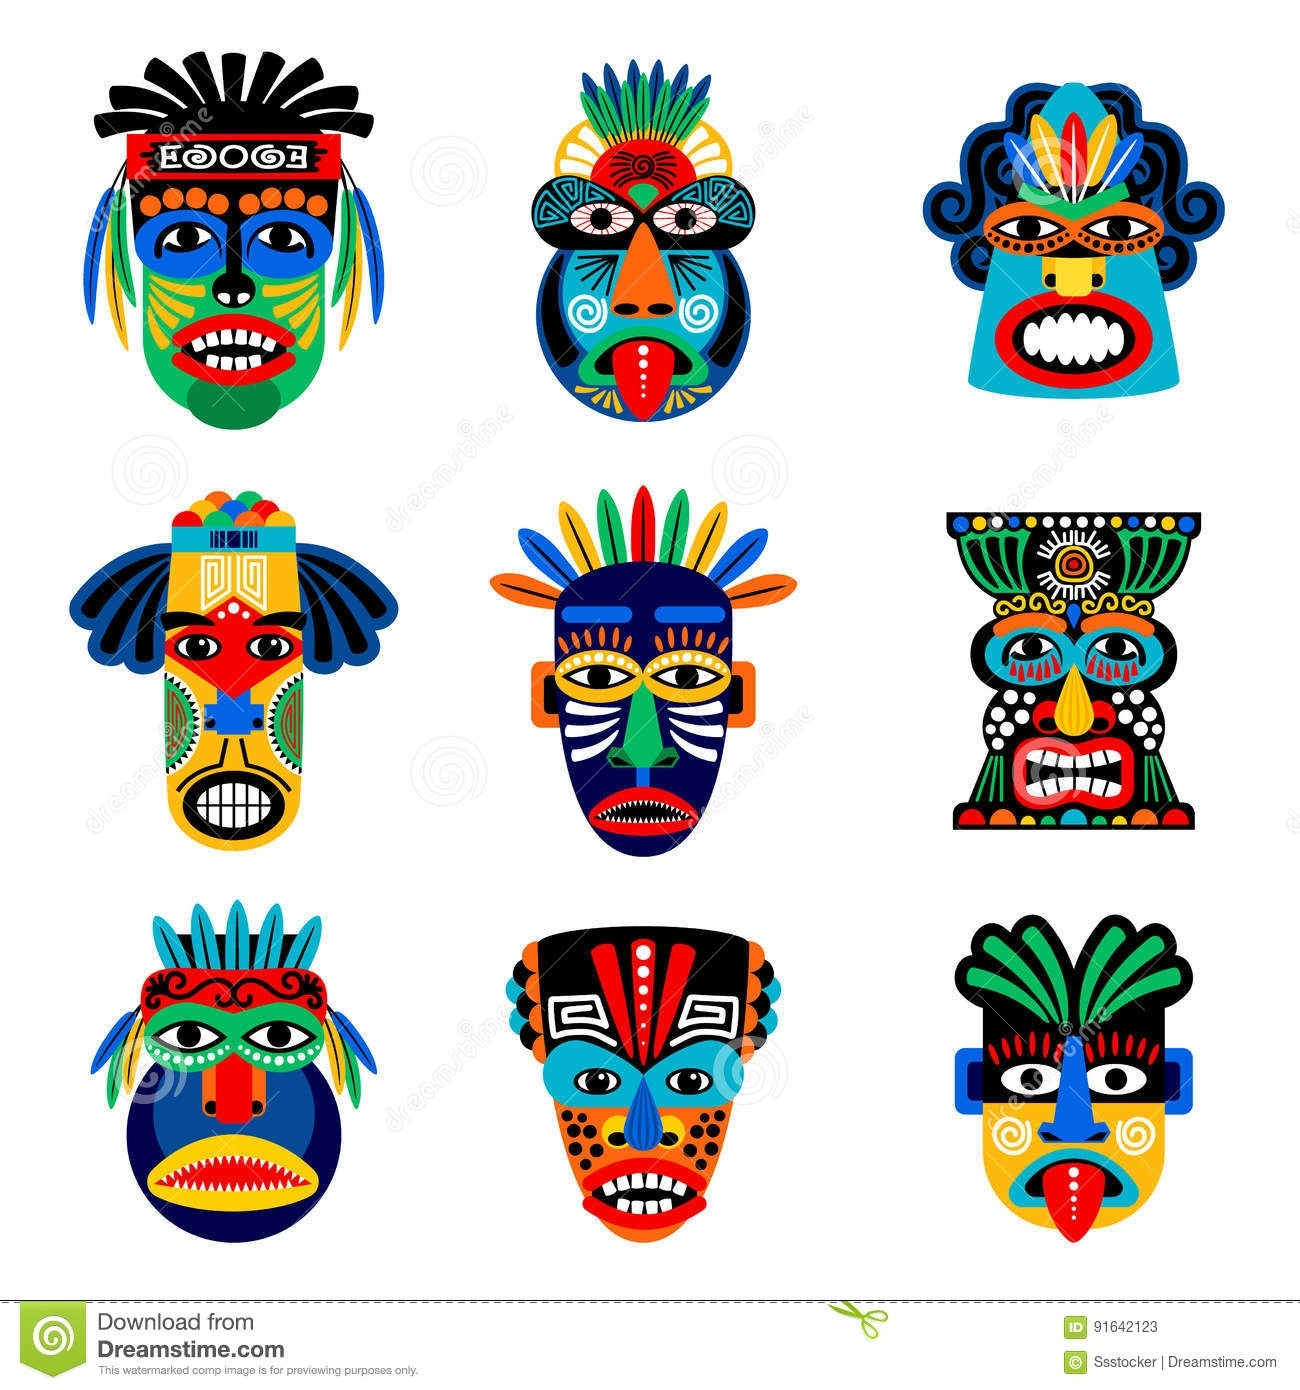 Zulu Or Aztec Mask Icons Stock Vector. Illustration Of Head - 91642123 inside Aztec Masks And Ther Meanings